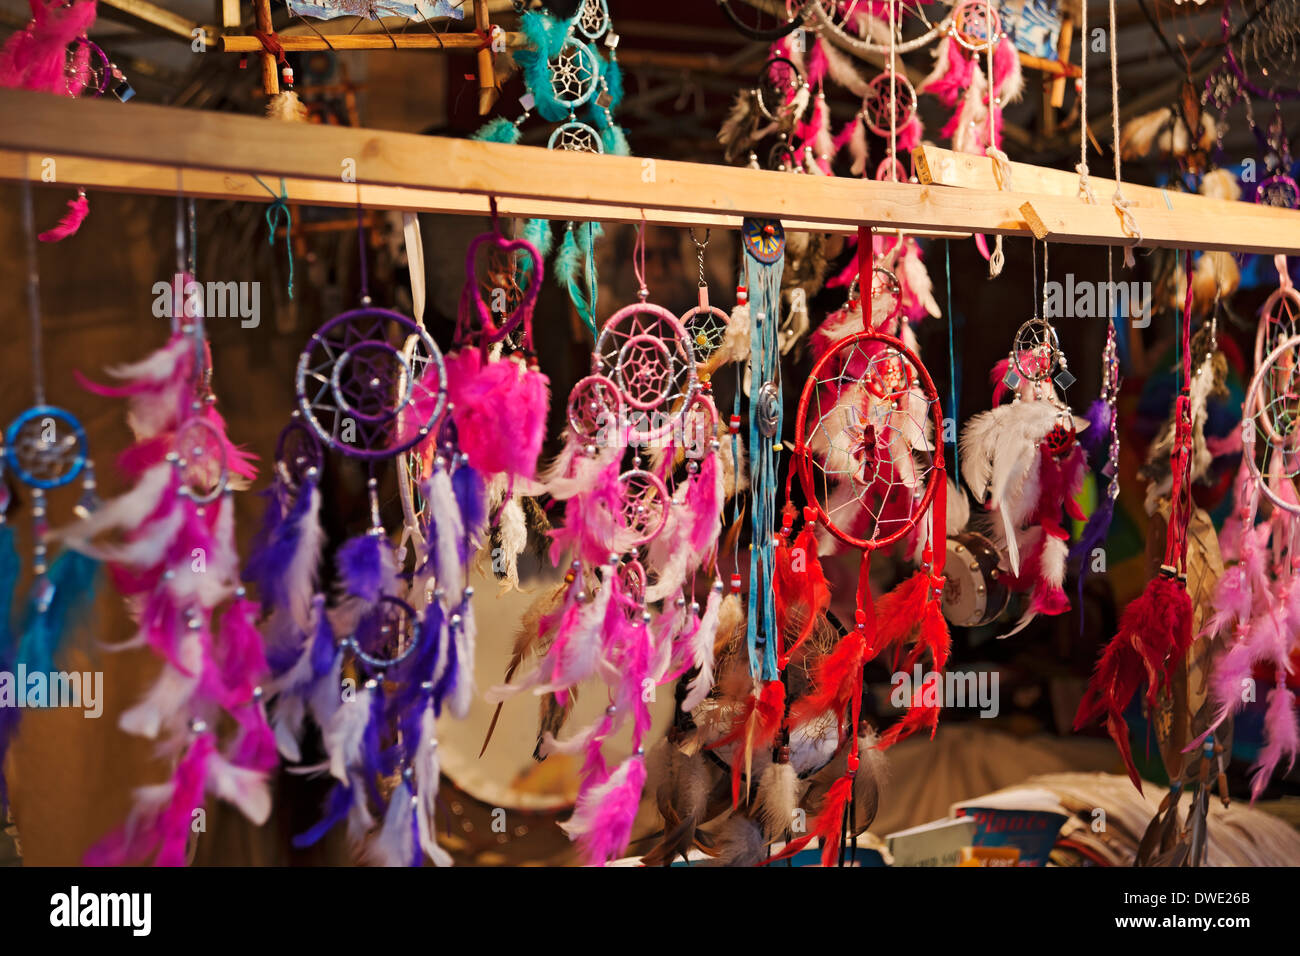 Dream Catchers For Sale Uk Dream catchers for sale on market stall York North Yorkshire 23